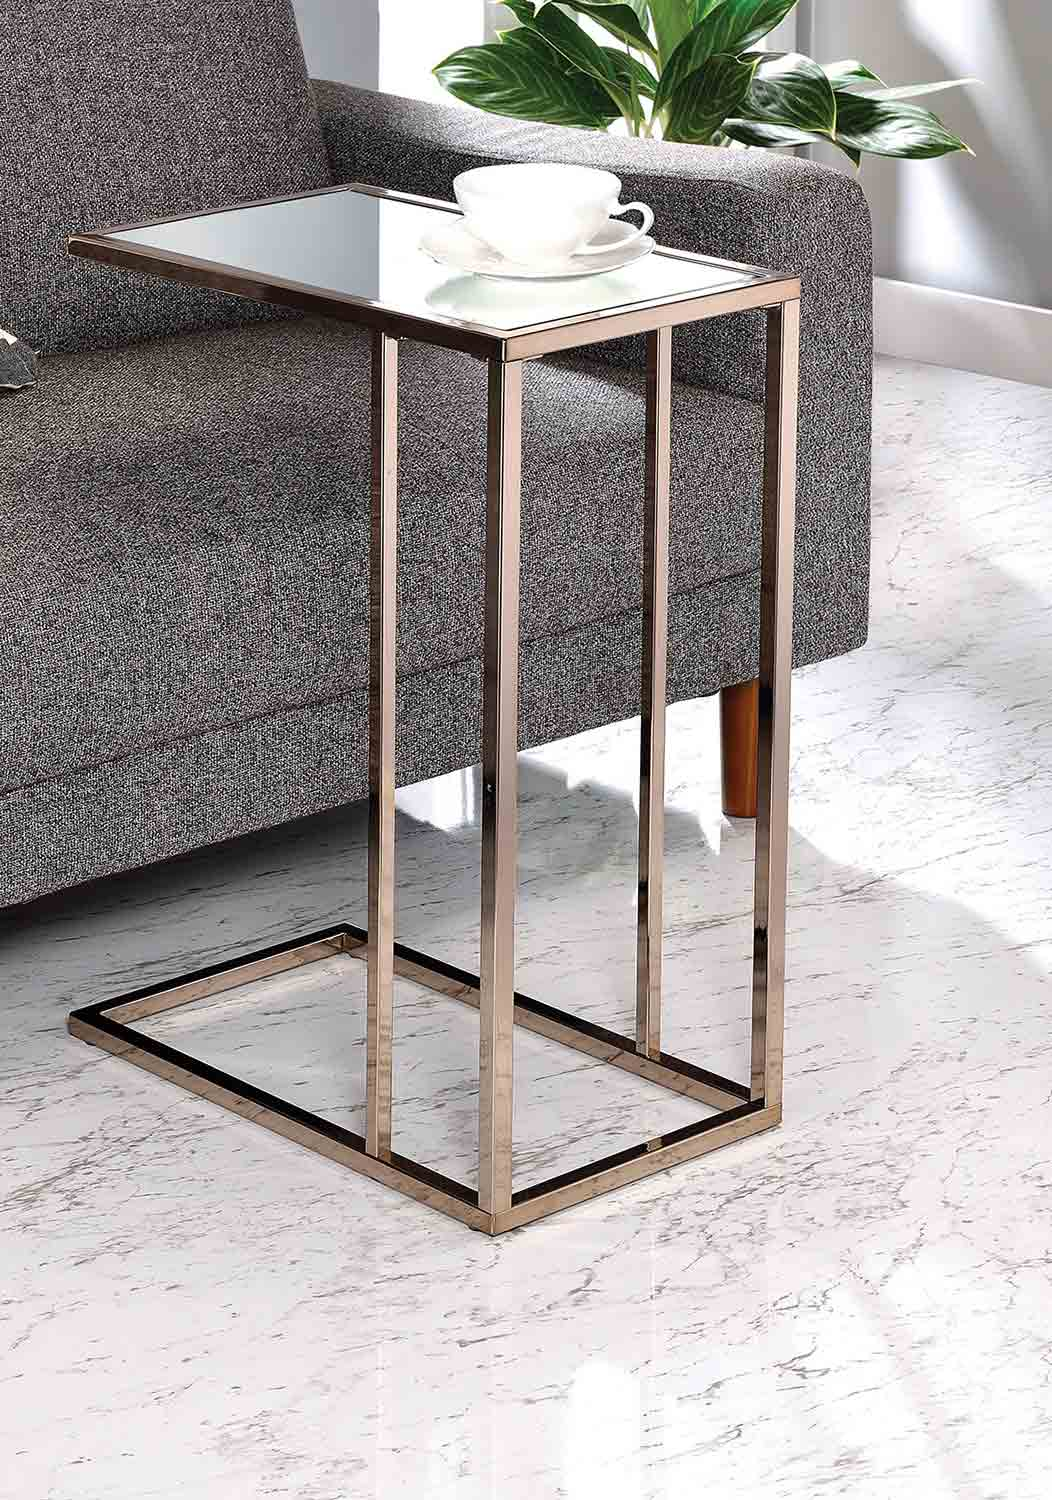 Coaster 902930 Accent Table - Clear/Chocolate Chrome